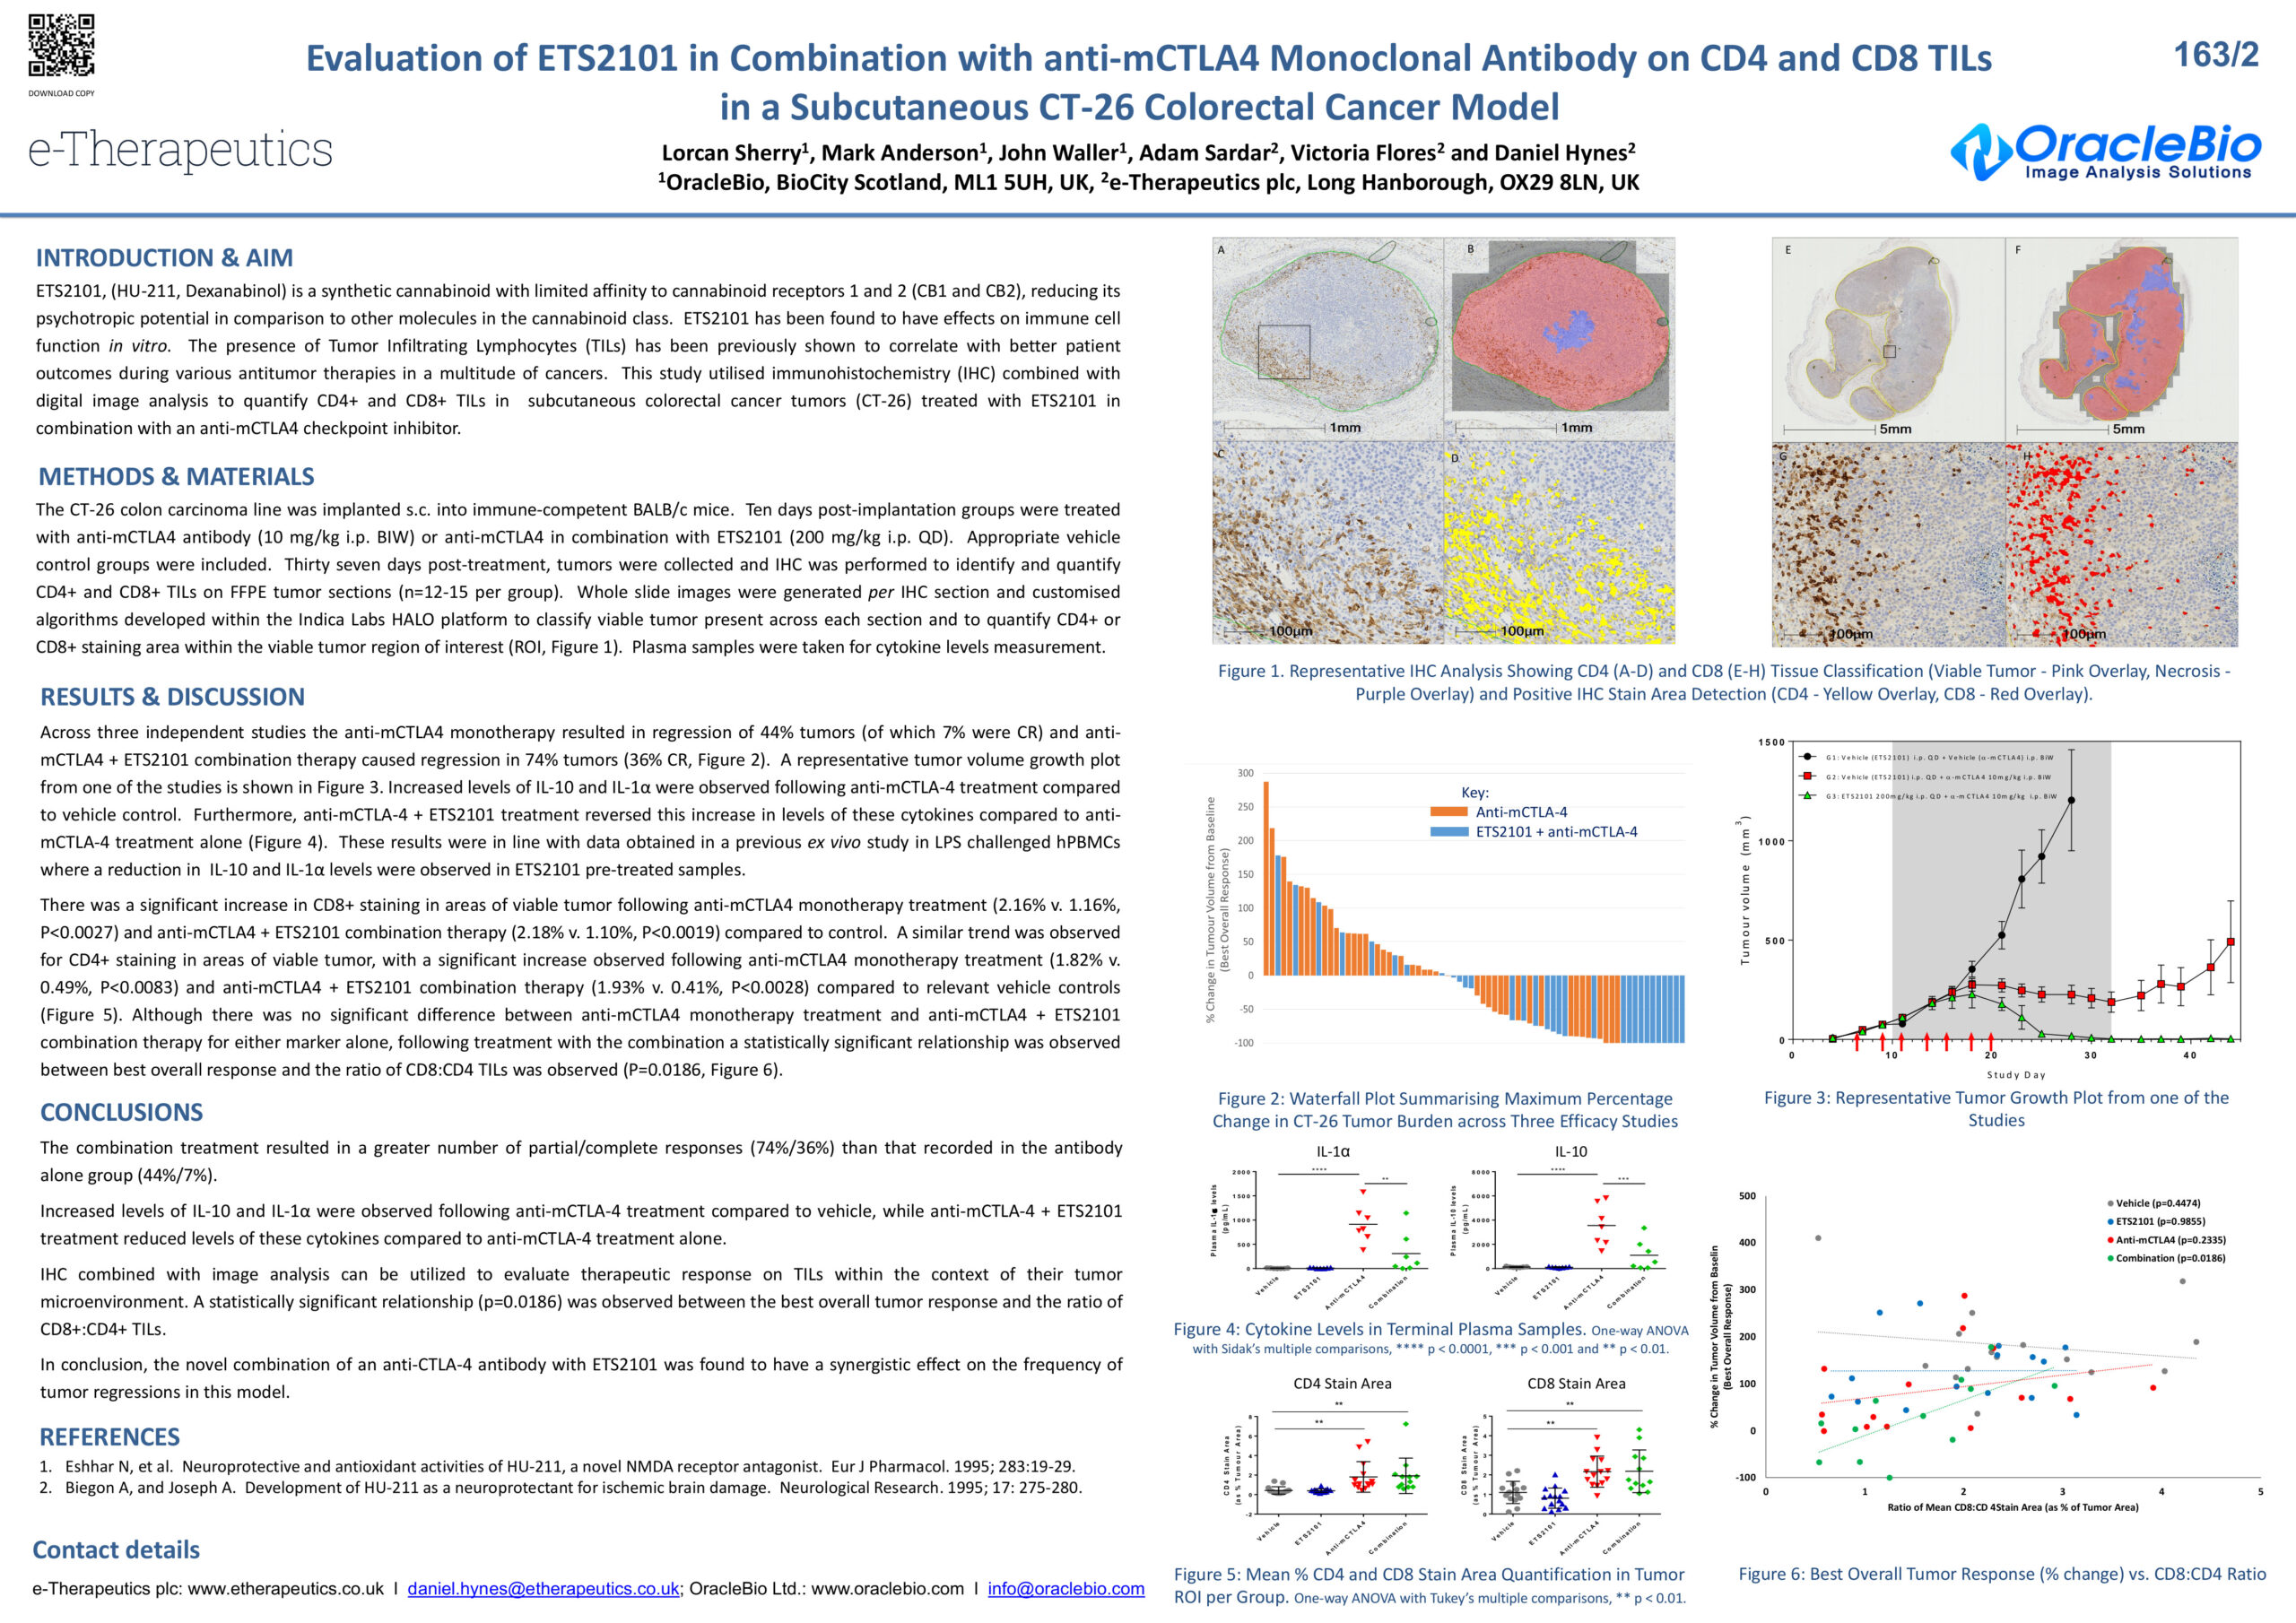 Evaluation of ETS2101 in Combination with anti-mCTLA4 Monoclonal Antibody on CD4 and CD8 TILs in a Subcutaneous CT-26 Colorectal Cancer Model